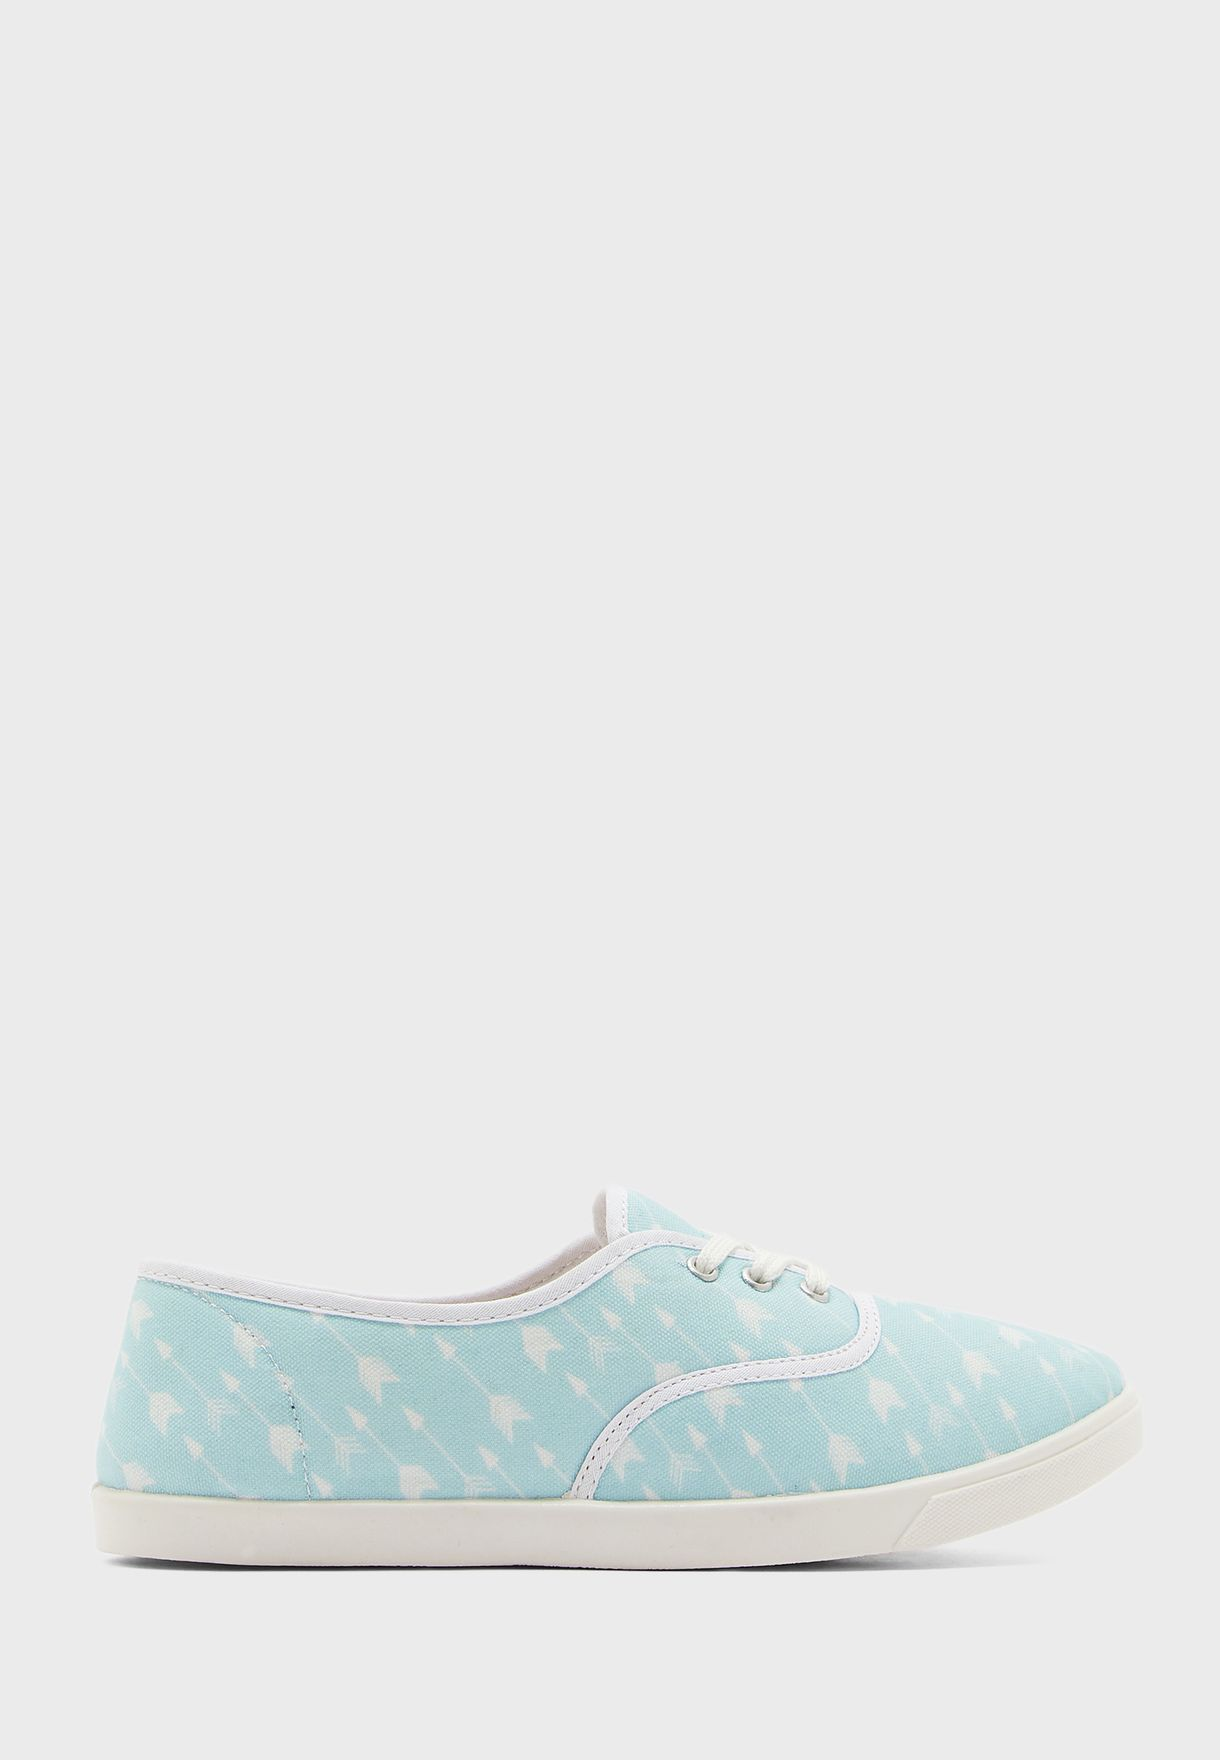 Lace Up Printed Slip On